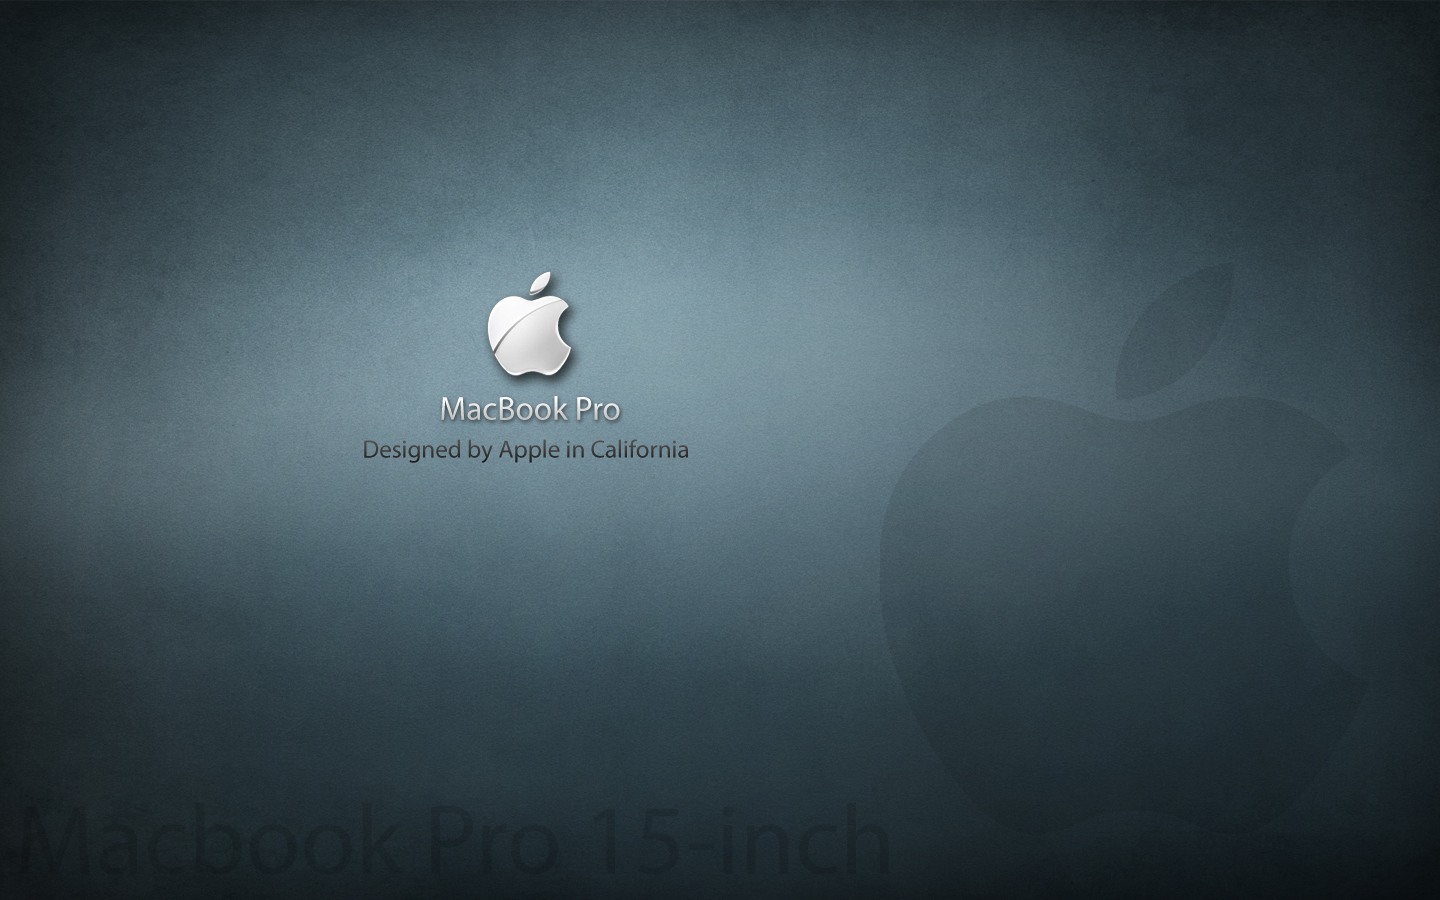 Macbook Pro Wallpaper